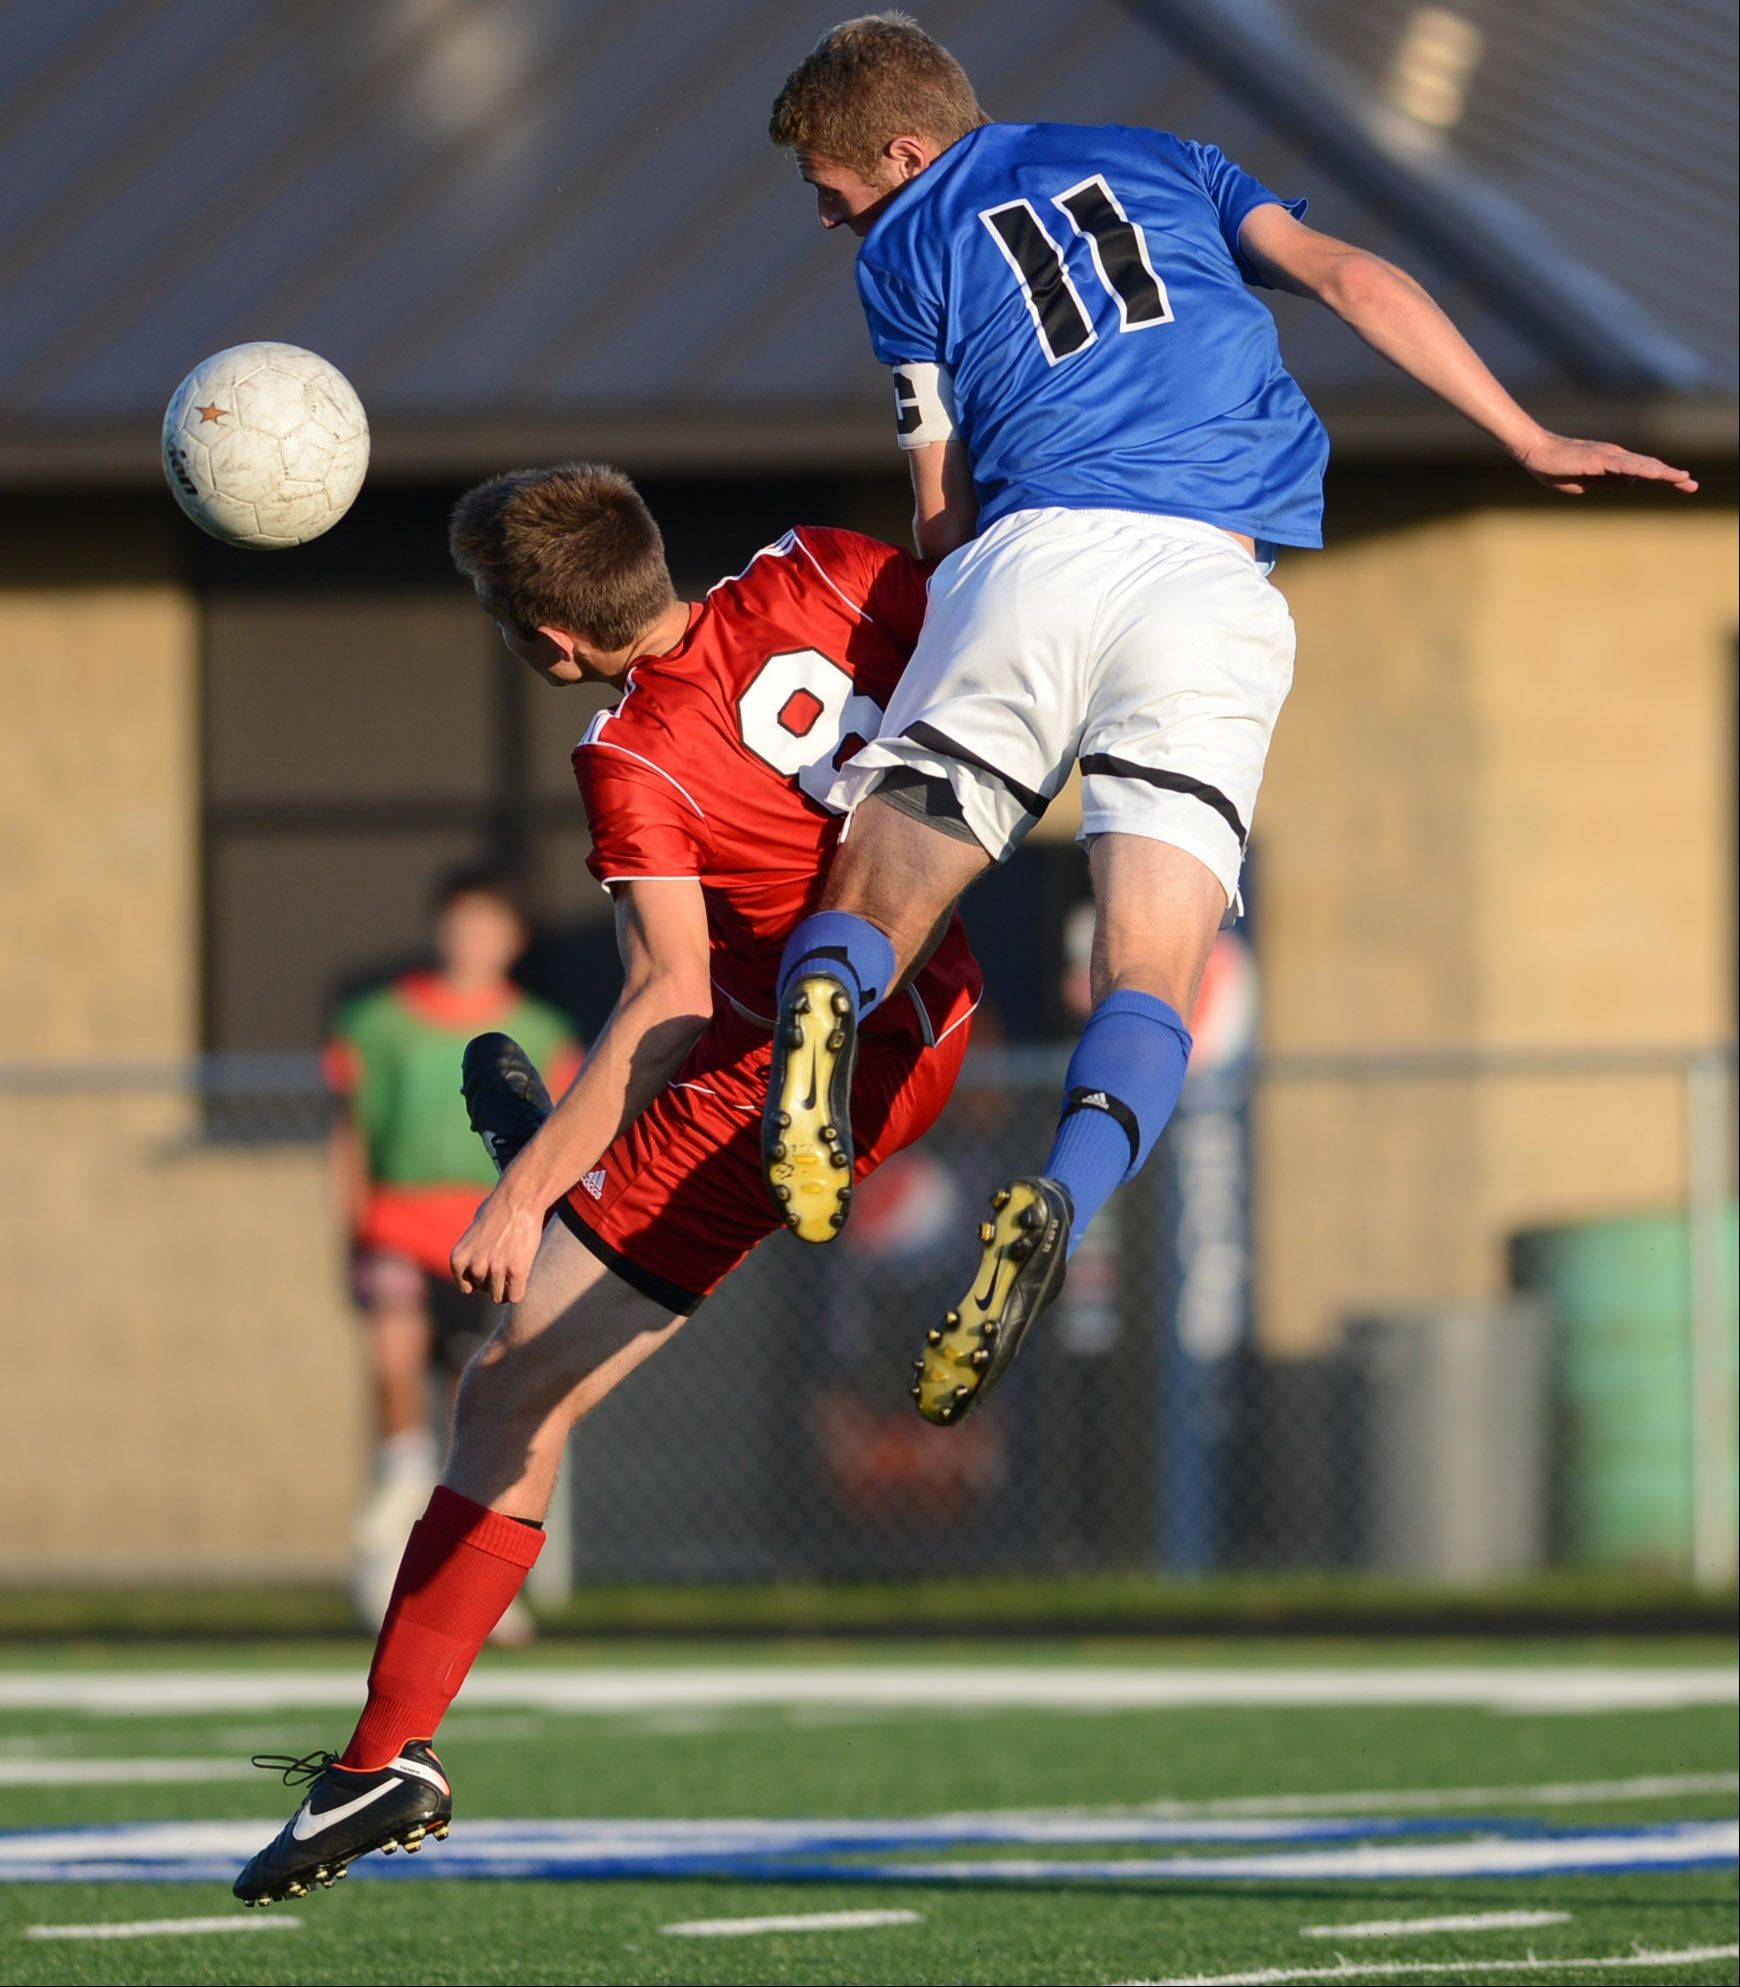 St. Charles North�s Phillip Legare wins a header over Batavia�s Brendan Allen during Tuesday�s action at the Tri-Cities boys soccer challenge in Geneva.